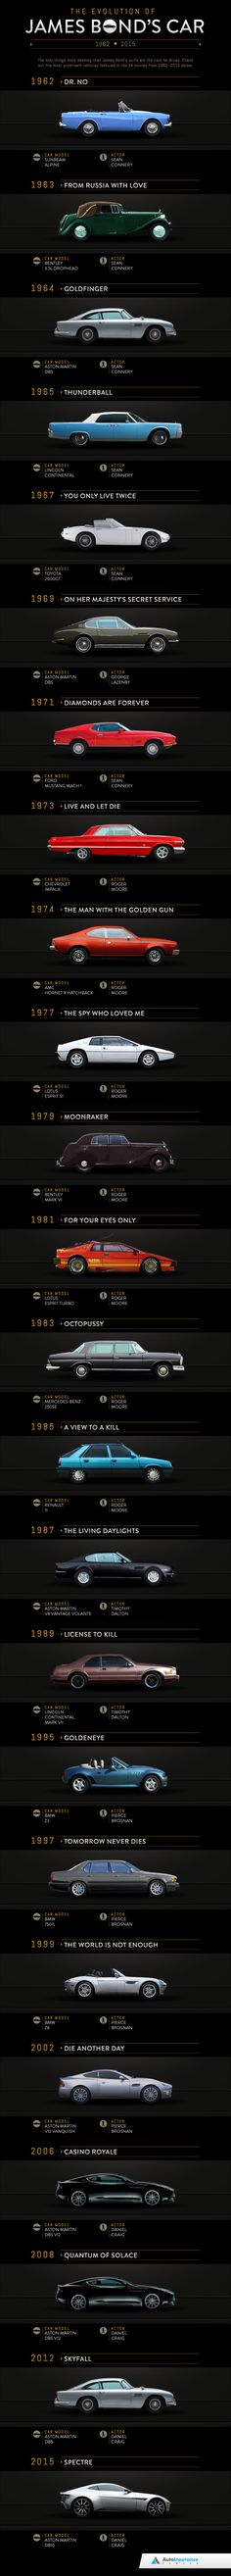 The Evolution of James Bond's Car!                                                                                                                                                      More